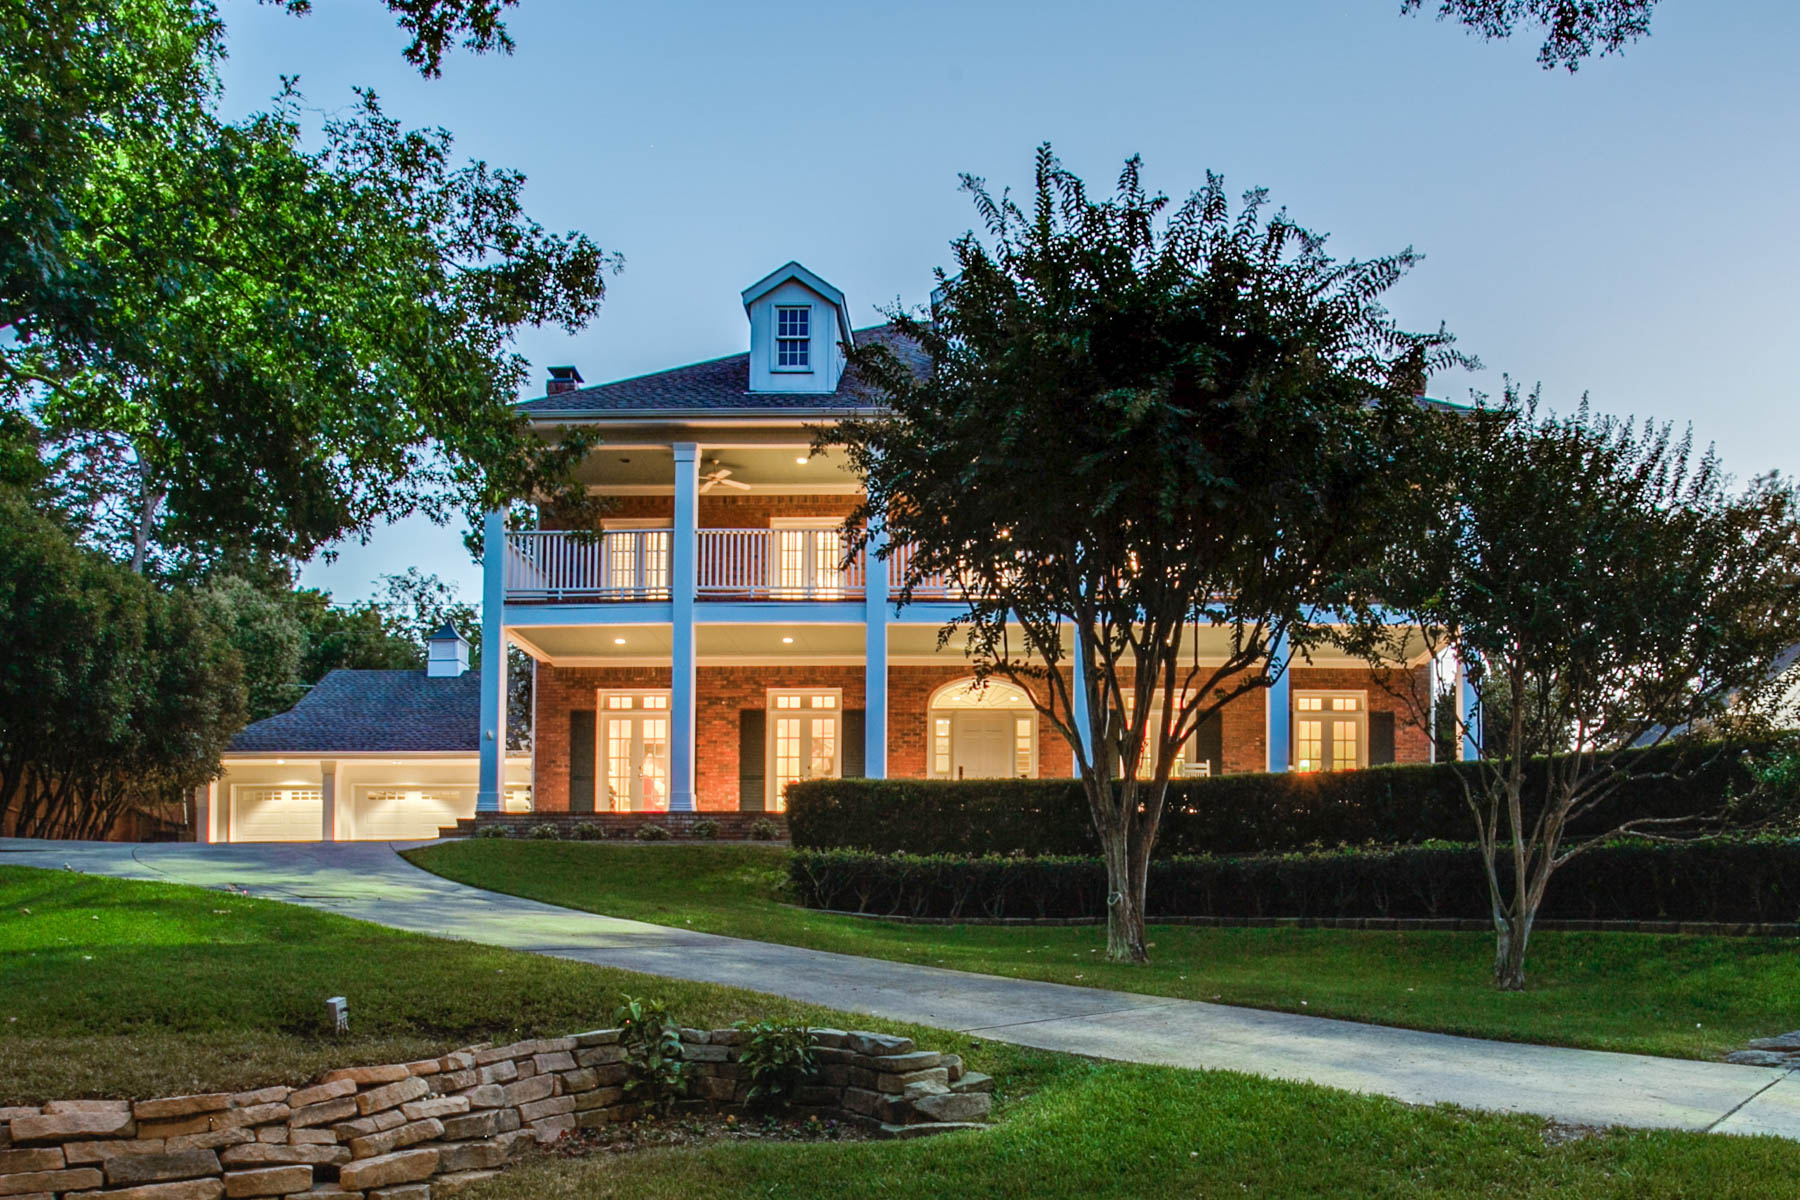 Single Family Home for Sale at A Lakewood Treasure 611 N. Brookside Drive Dallas, Texas, 75214 United States